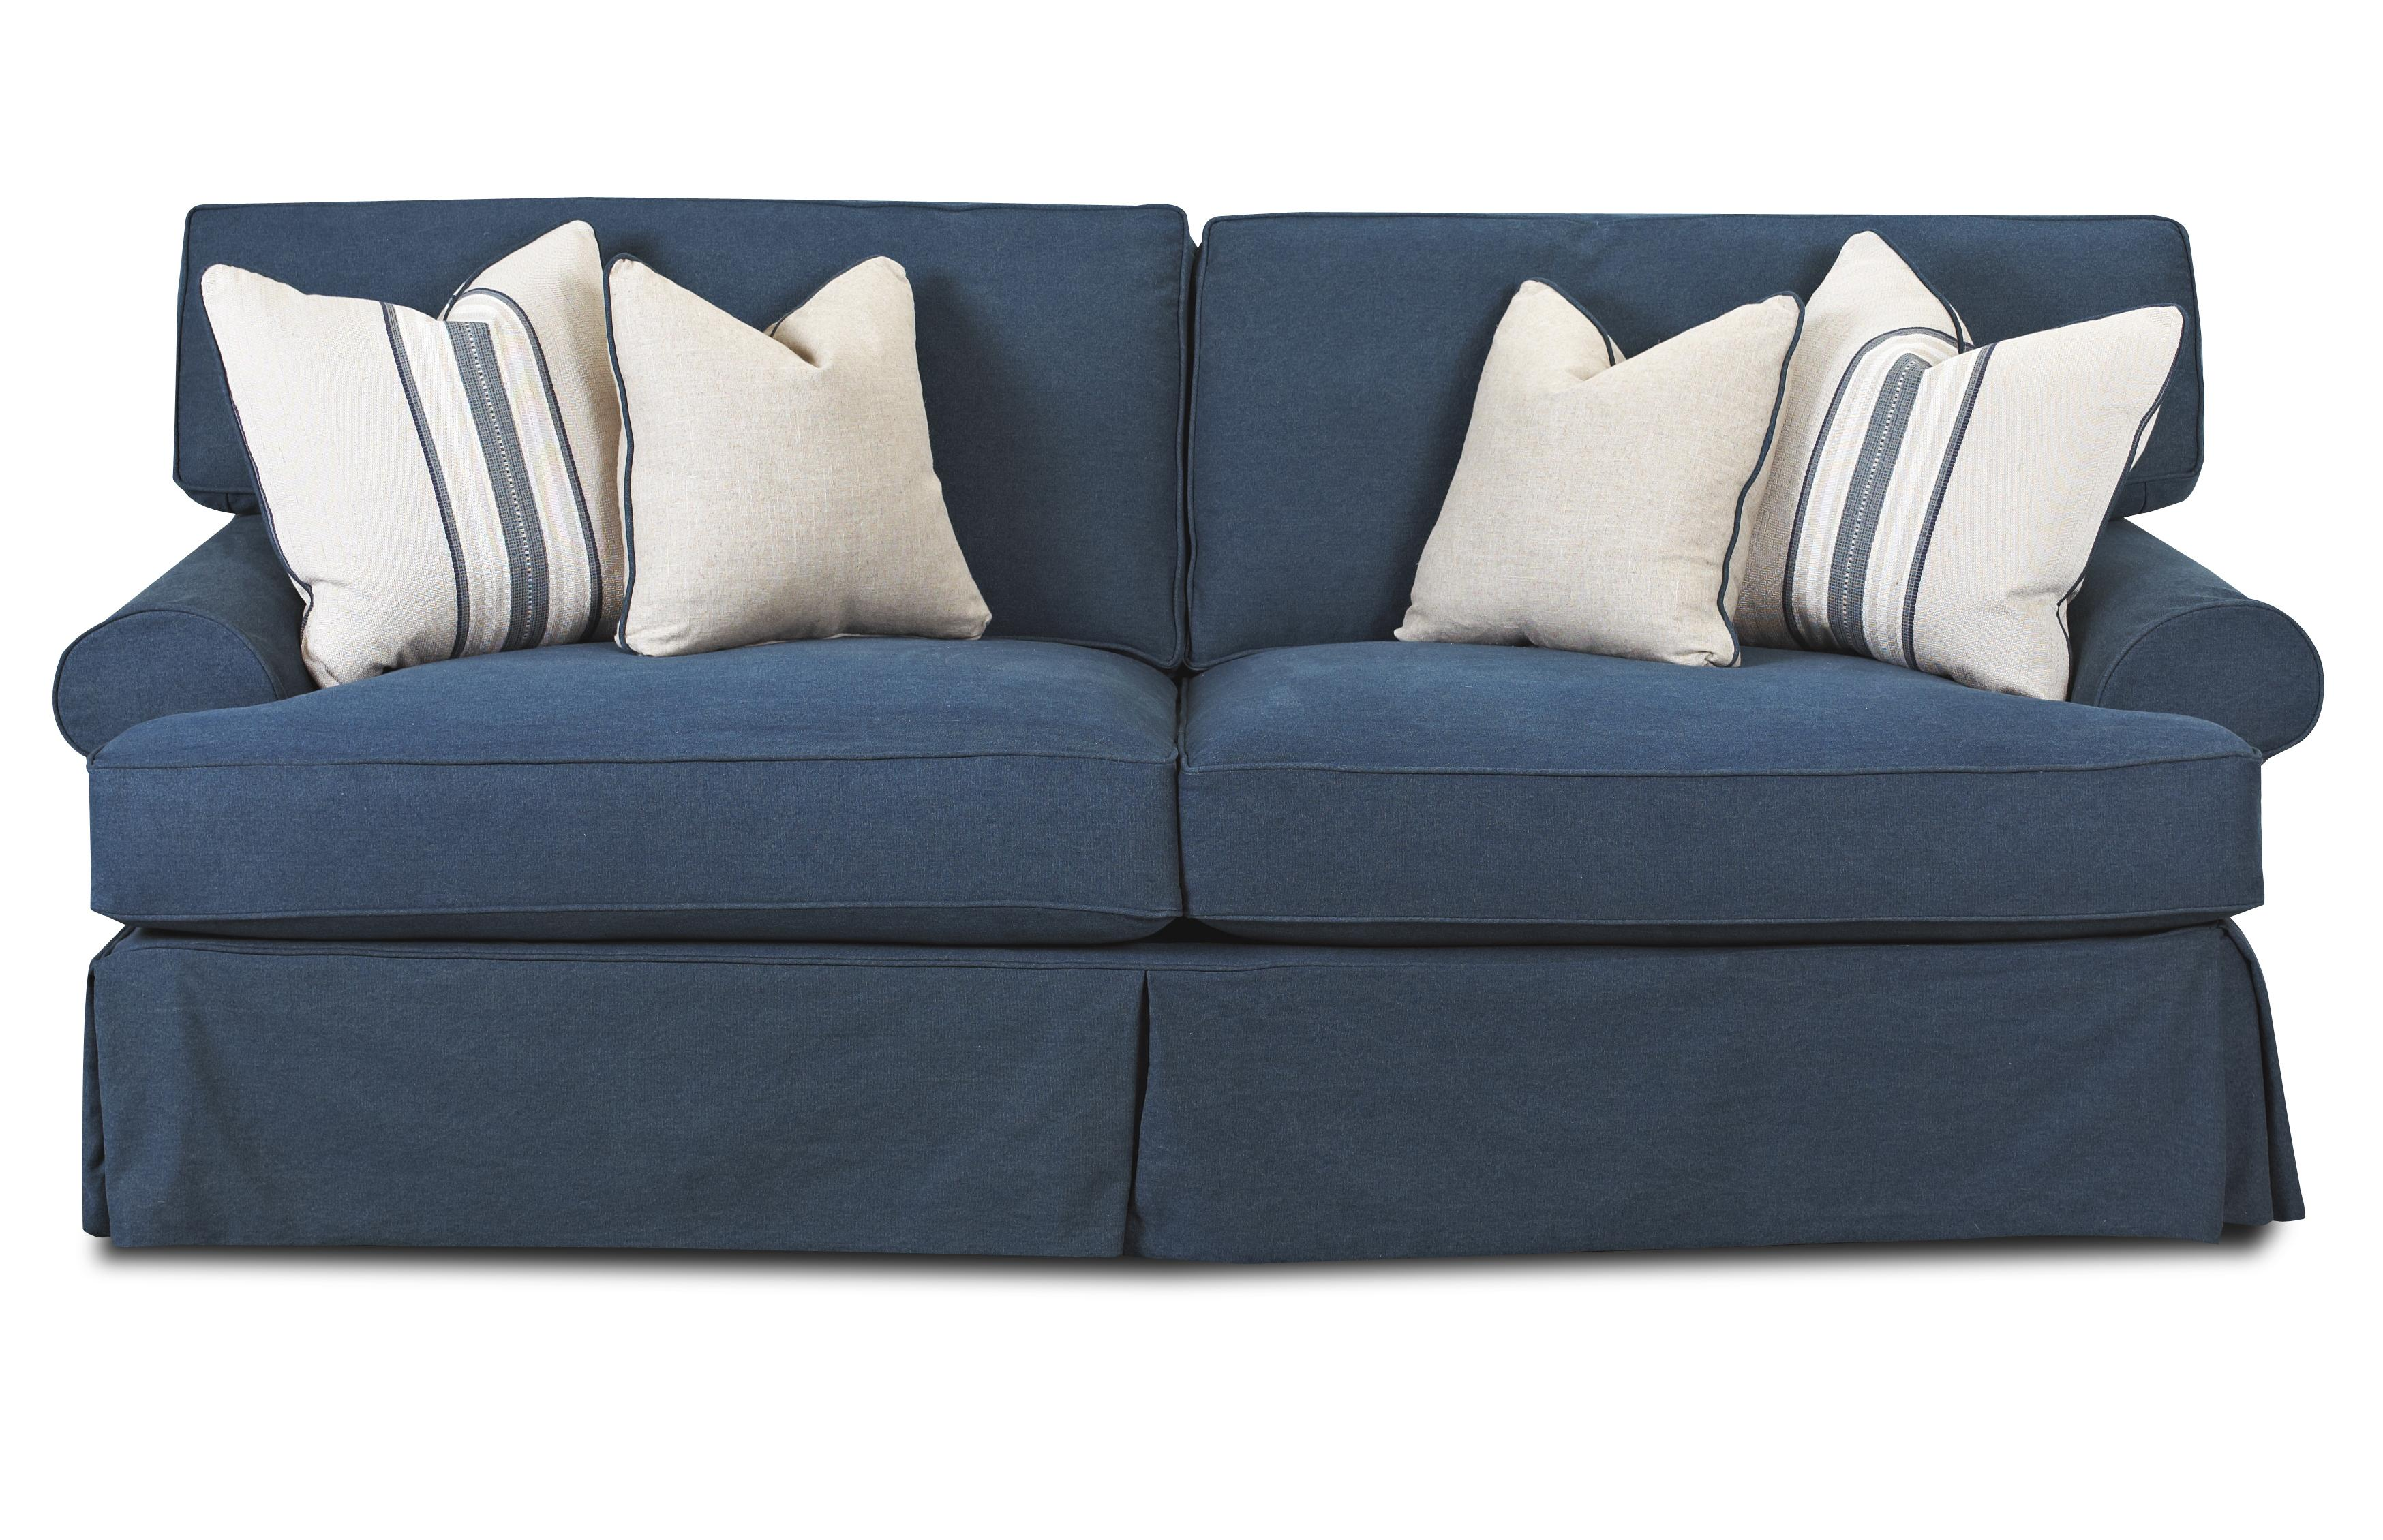 Klaussner lahoya d28140 s sofa with blend down cushions for Furniture 0 down